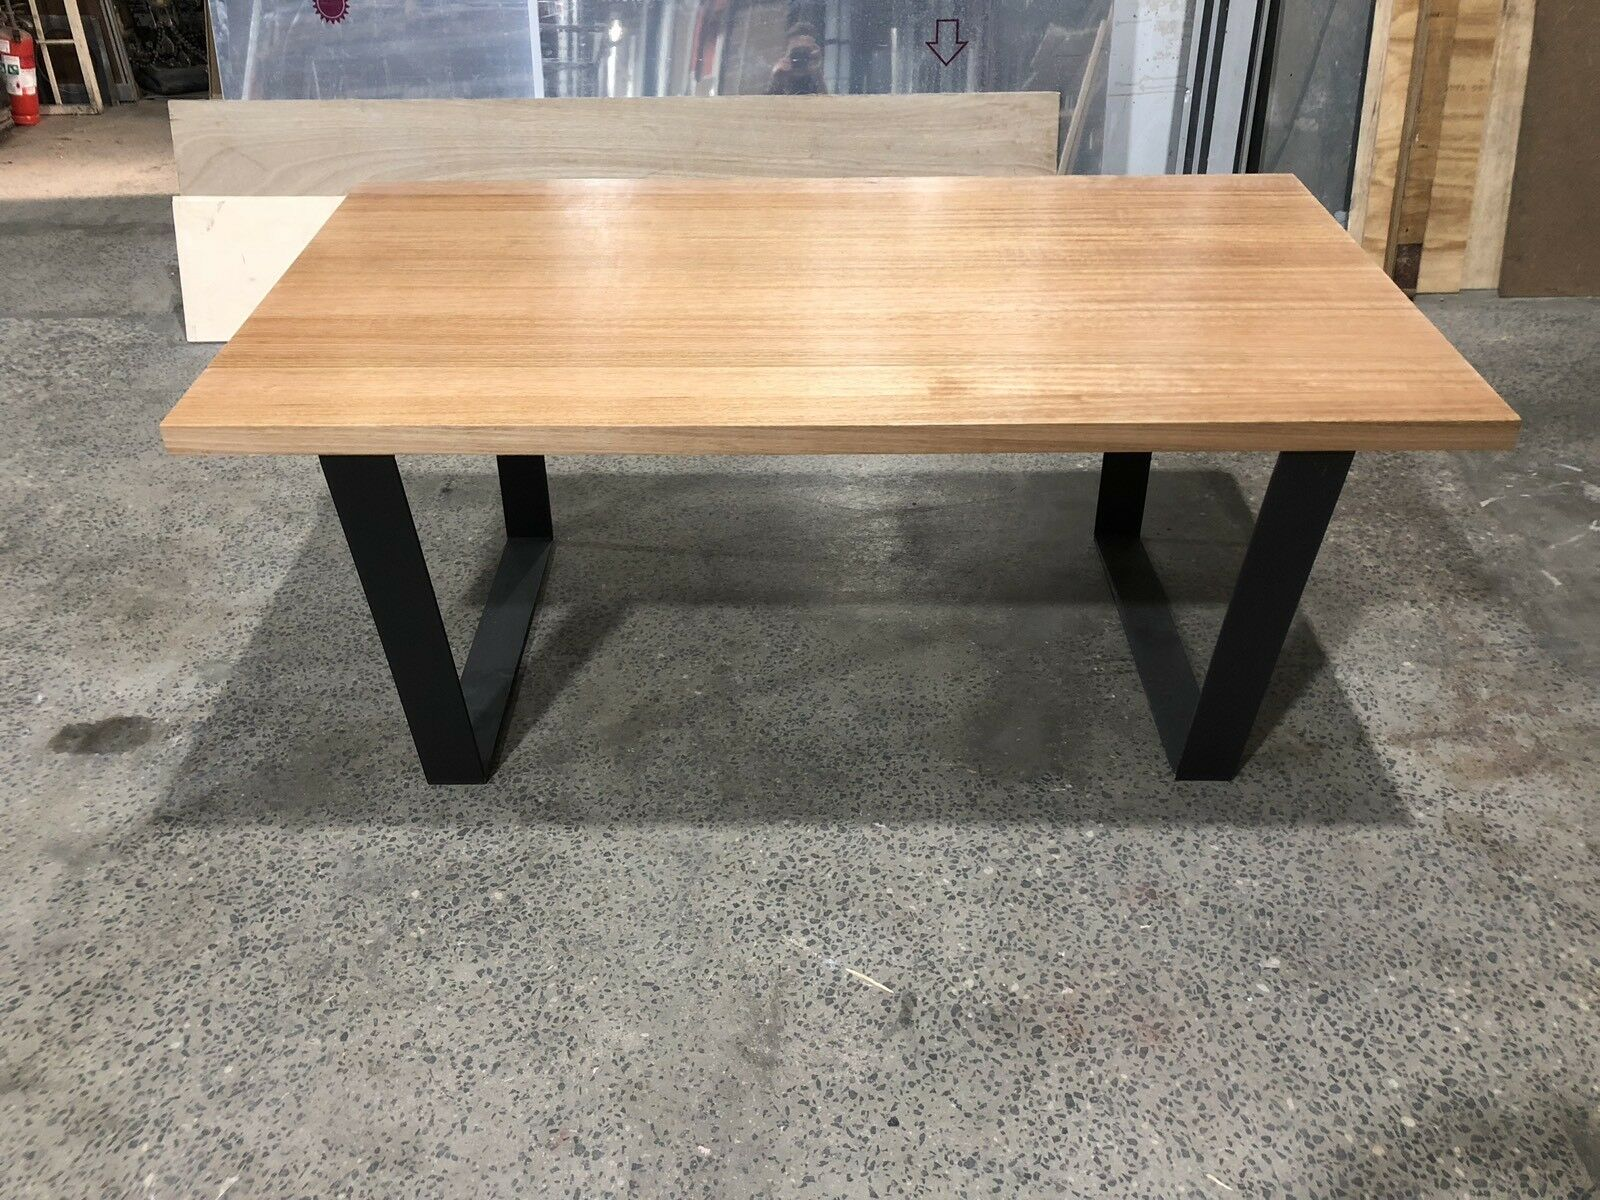 Brand new vic ash dining table dining tables gumtree australia melbourne city melbourne cbd 1195779288